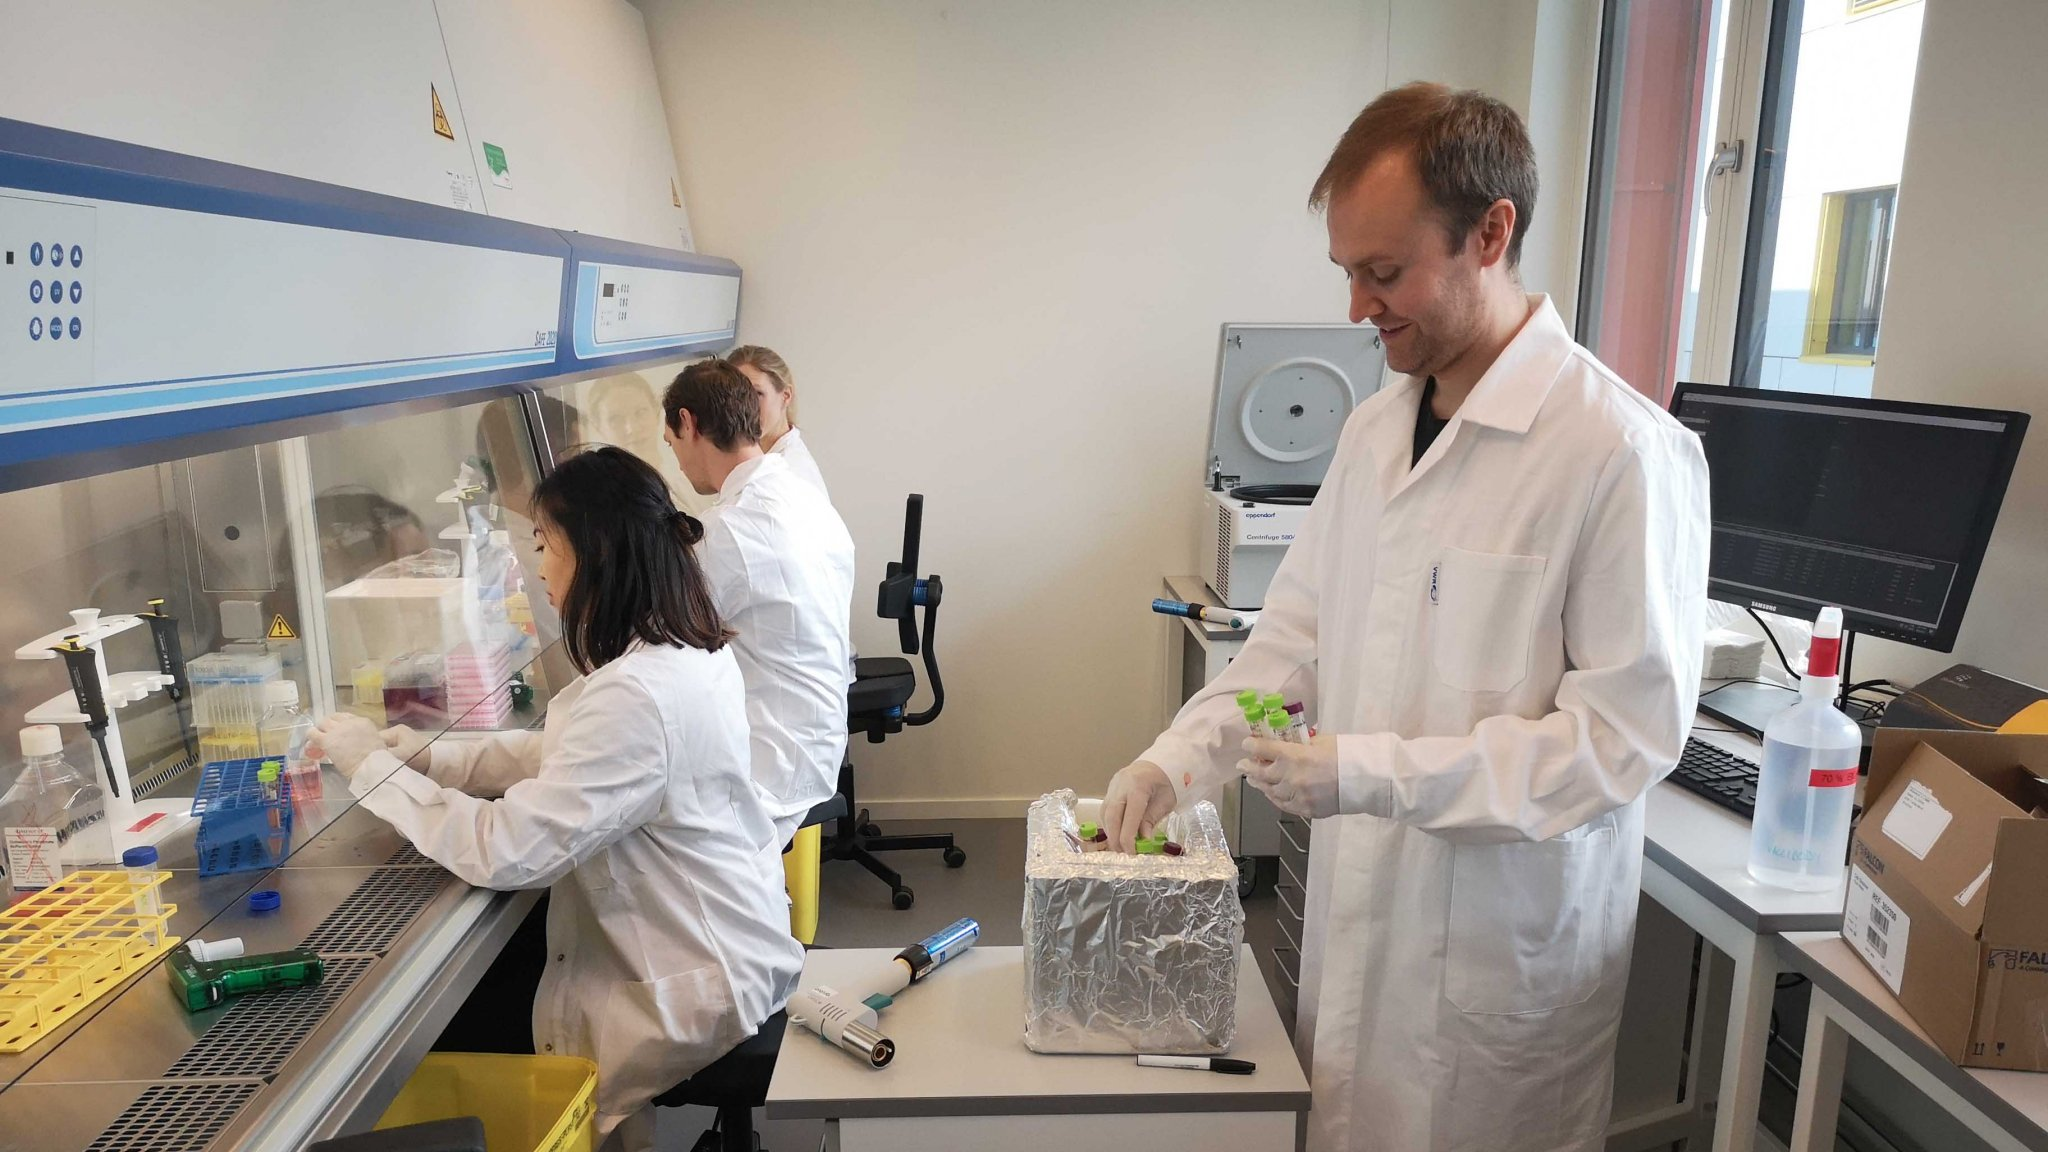 Audun Bersaas, and his team from Vaccibody, working in the Oslo Cancer Cluster Incubator laboratories.